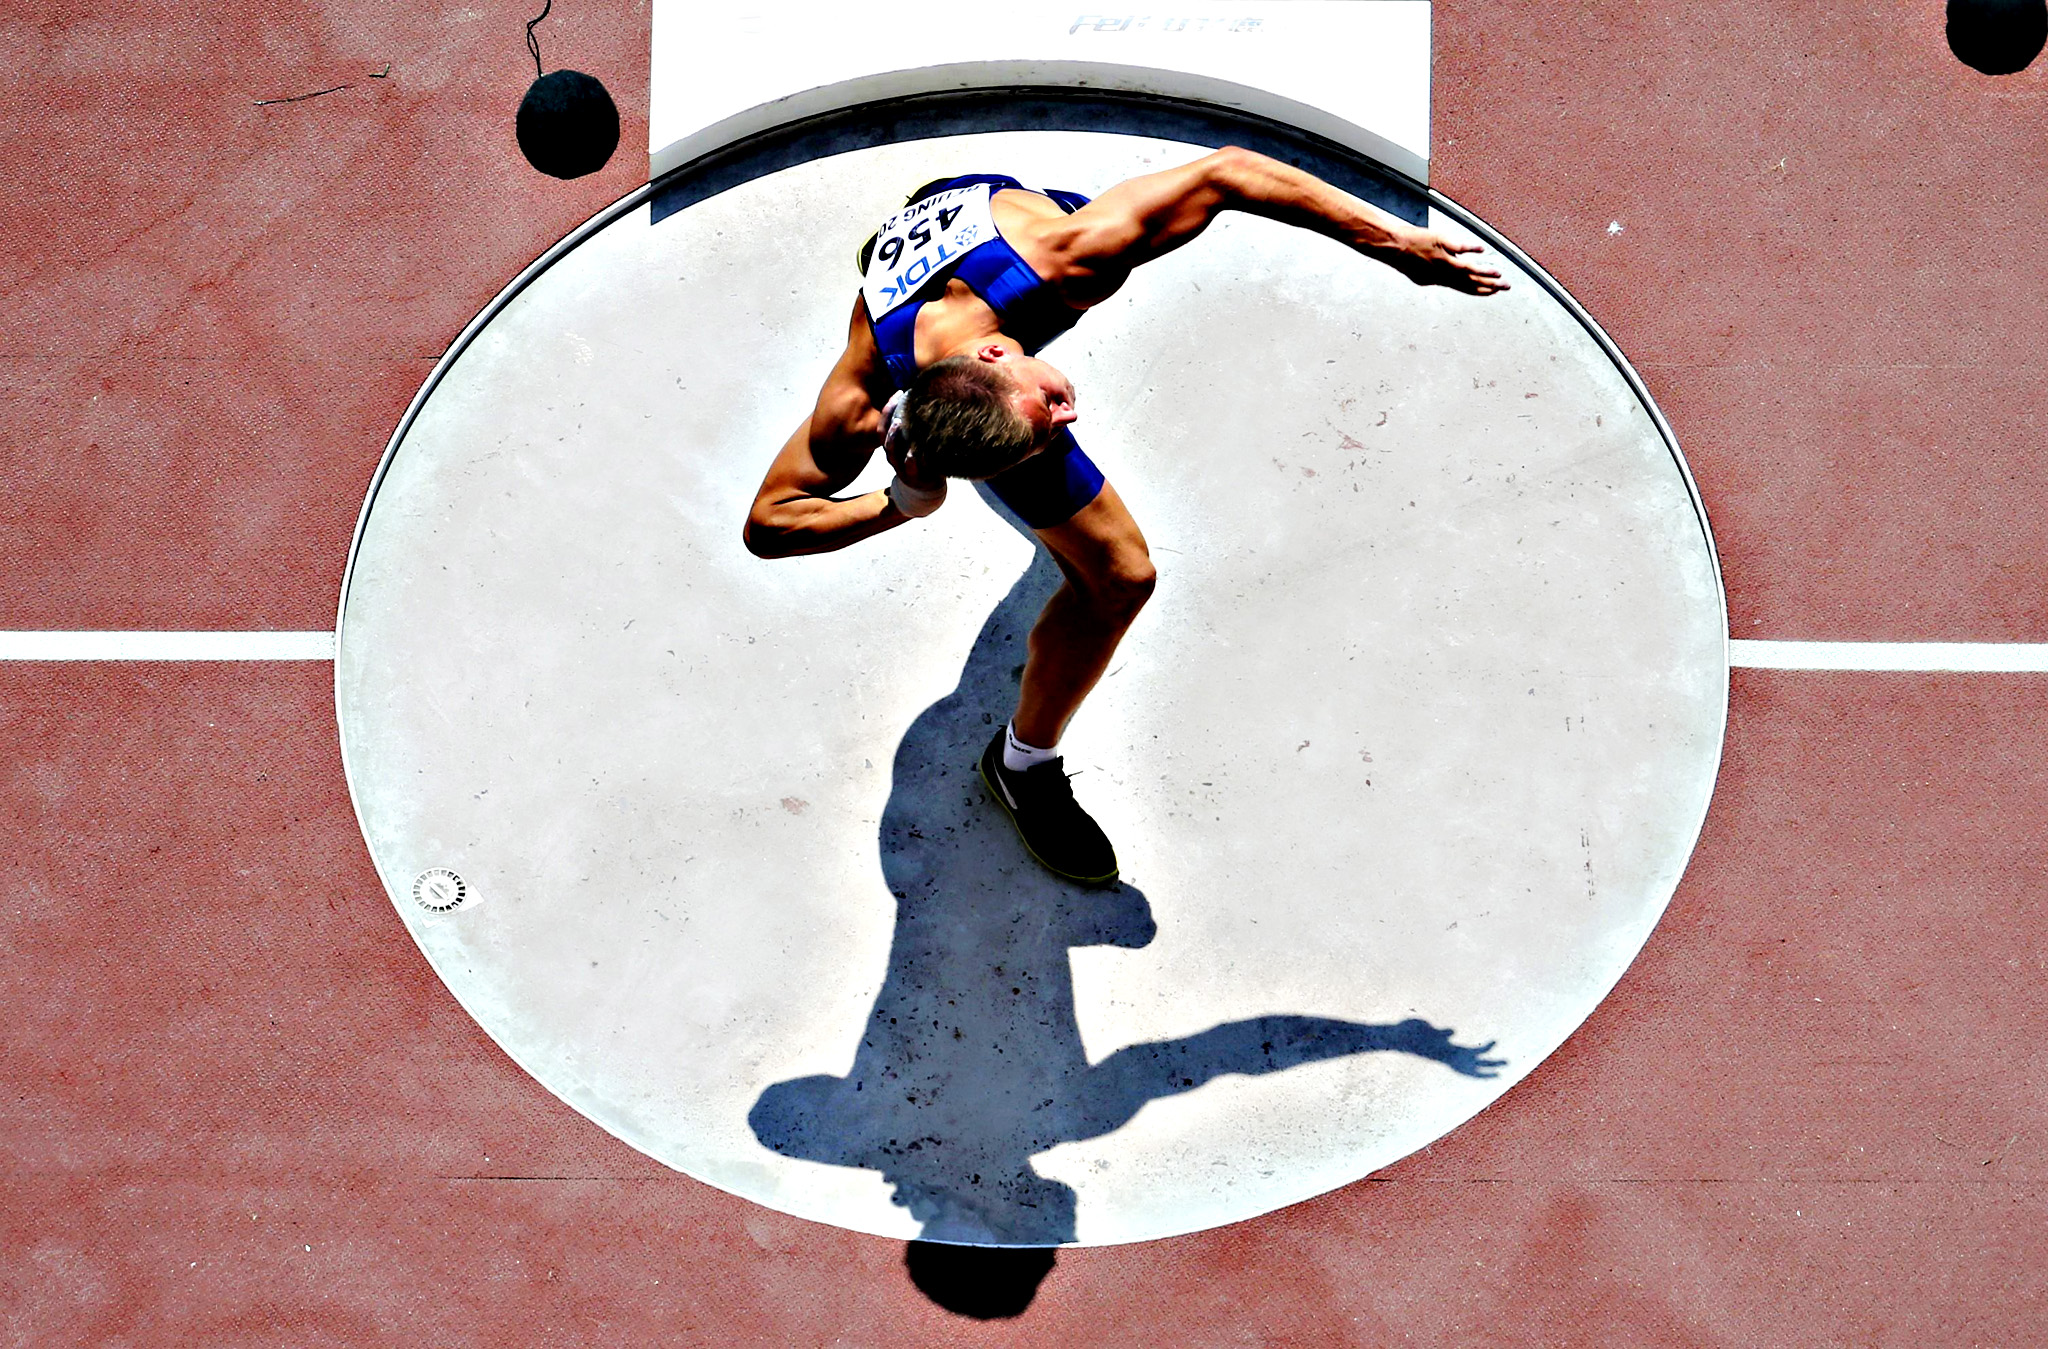 Janek Oiglane of Estonia competes in the men's decathlon shot put event during the 15th IAAF World Championships at the National Stadium in Beijing, China August 28, 2015.